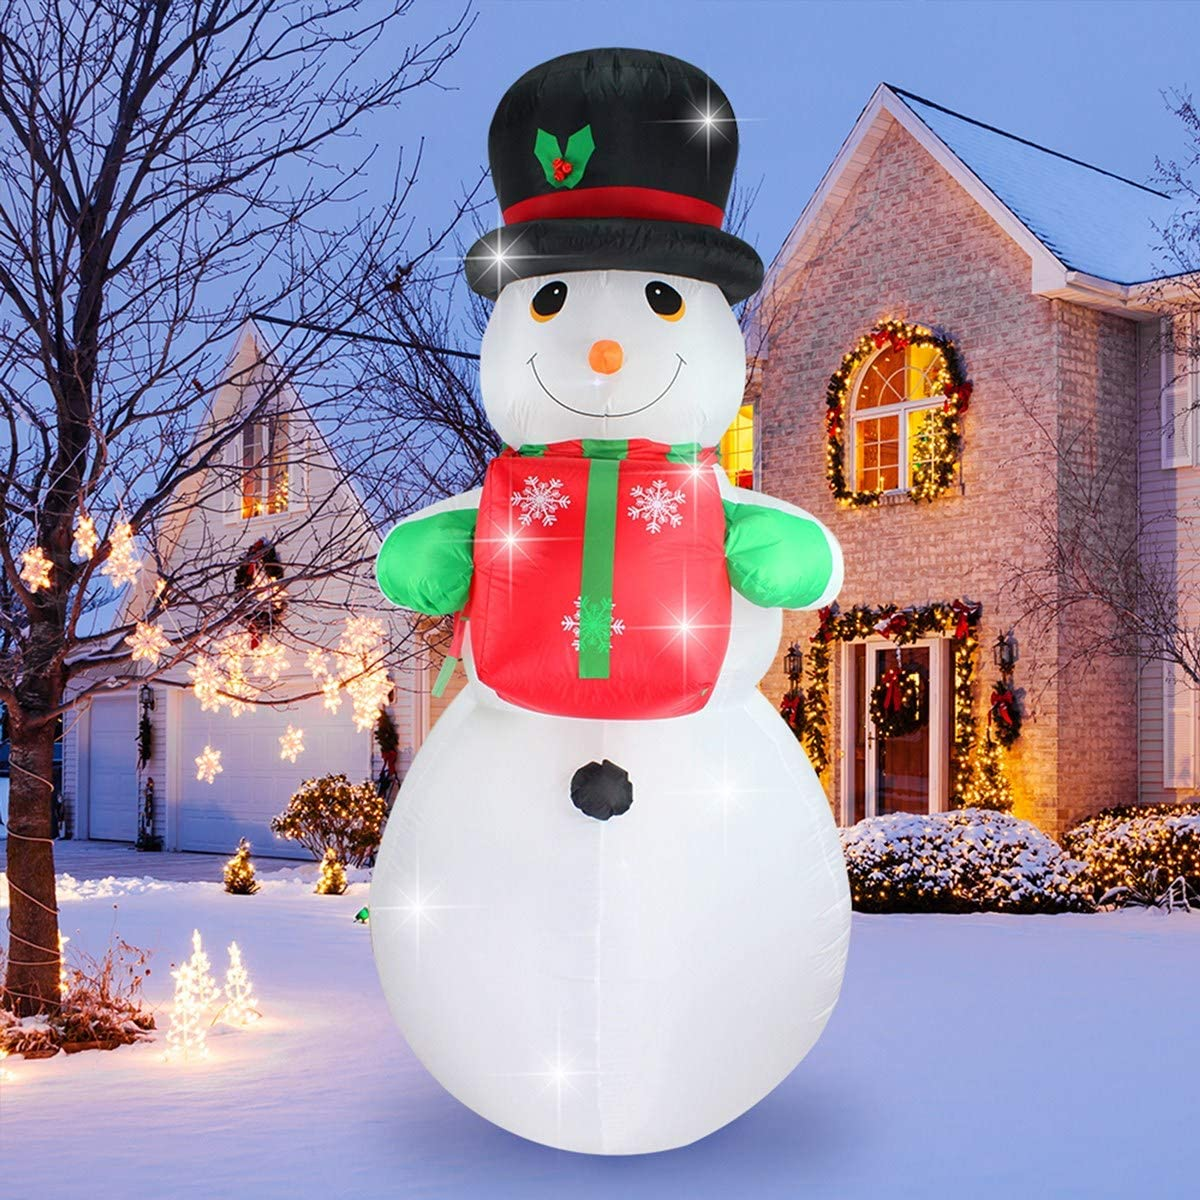 ShinyDec Christmas Inflatable 12 Foot Xmas Snowman with Gift, Lights  Airblown Oversize Yard Decorations, White